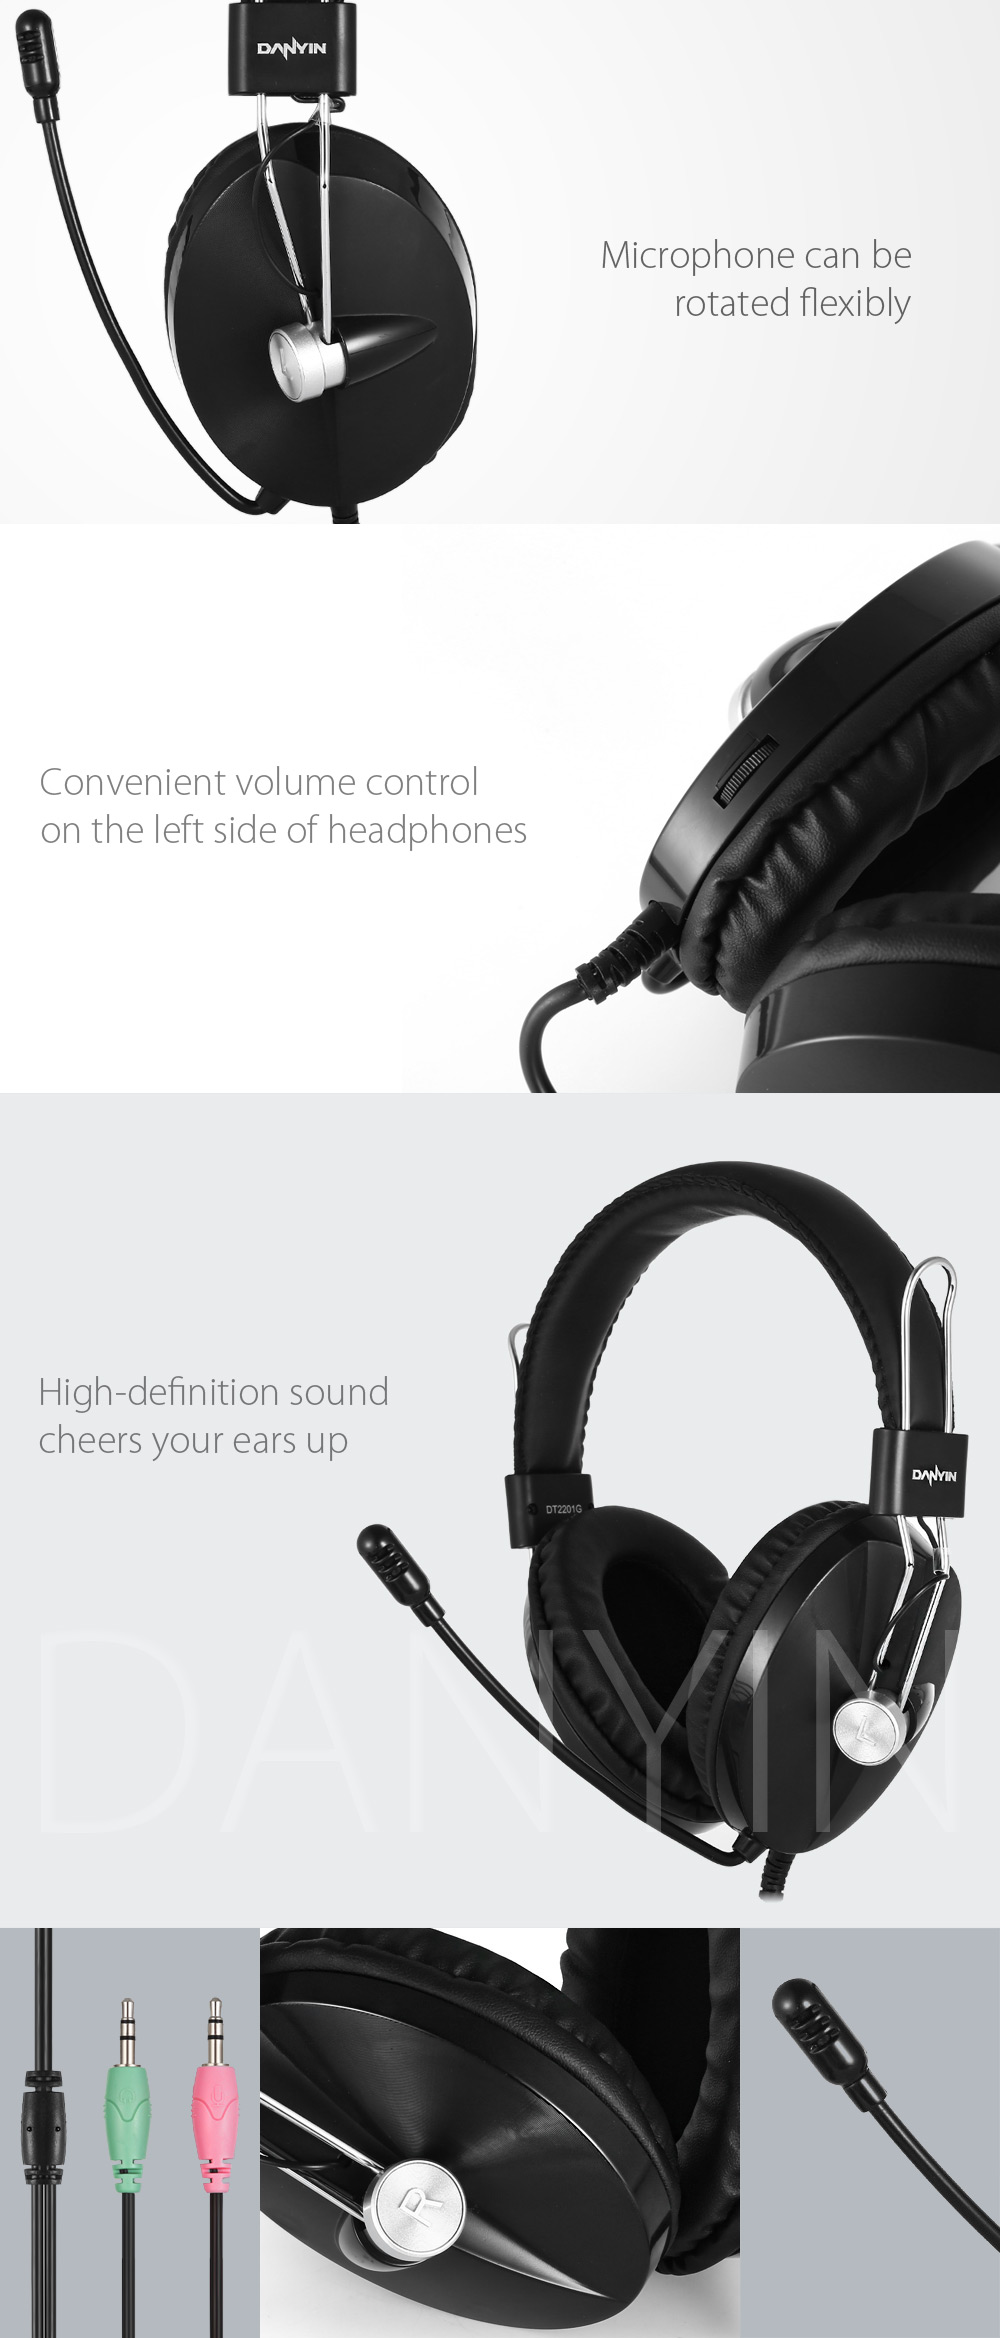 DANYIN DT - 2201G Game Headset for PC